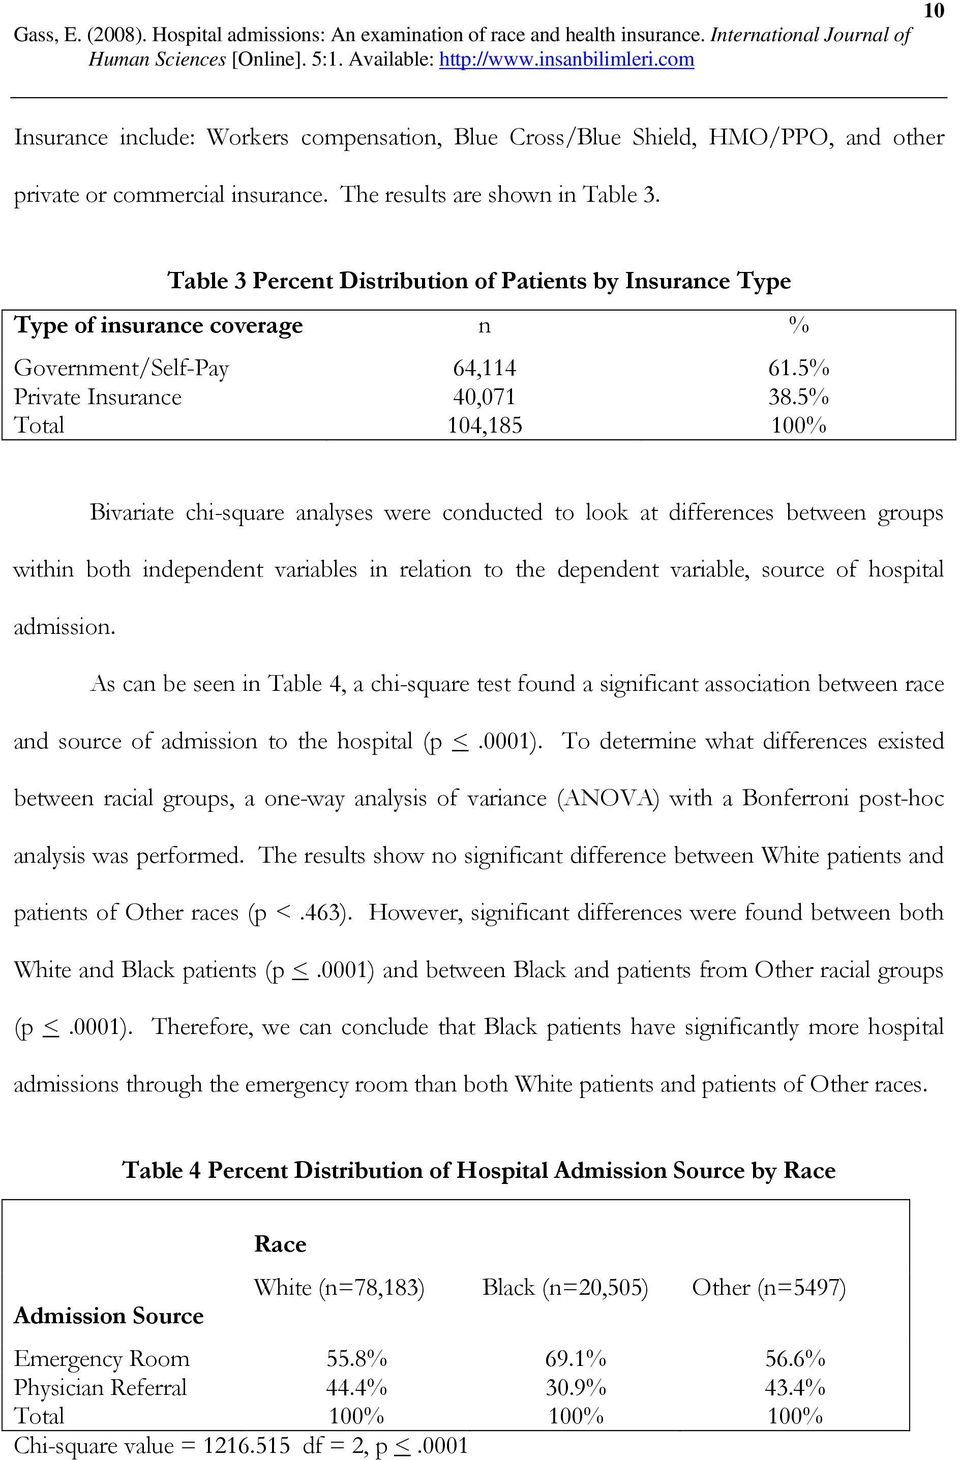 5% Total 104,185 100% Bivariate chi-square analyses were conducted to look at differences between groups within both independent variables in relation to the dependent variable, source of hospital